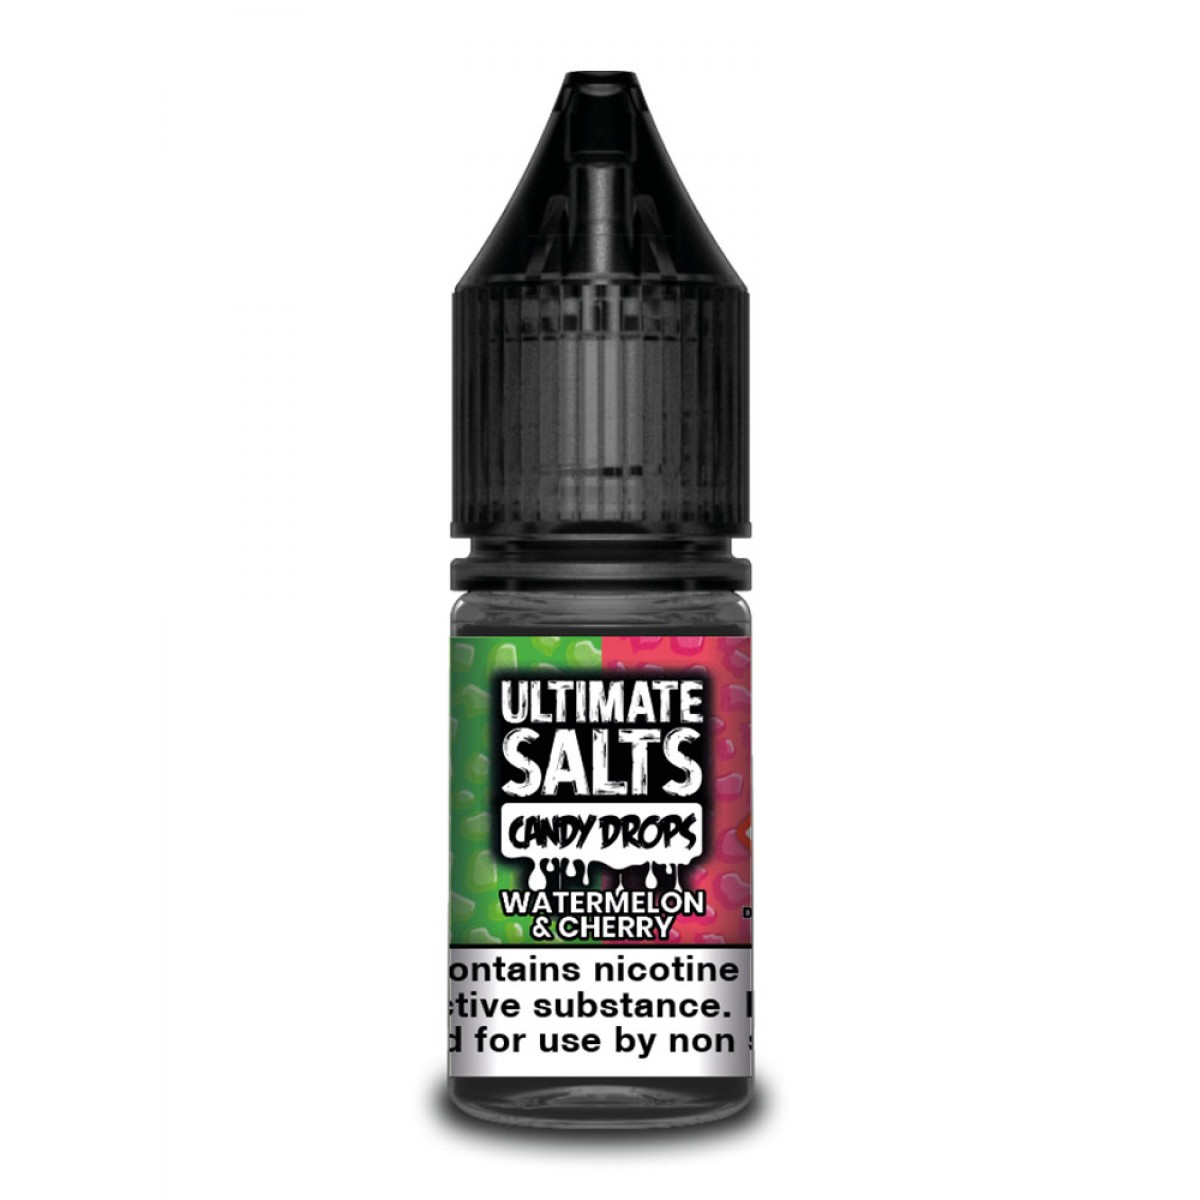 WATERMELON & CHERRY BY ULTIMATE SALTS CANDY DROPS